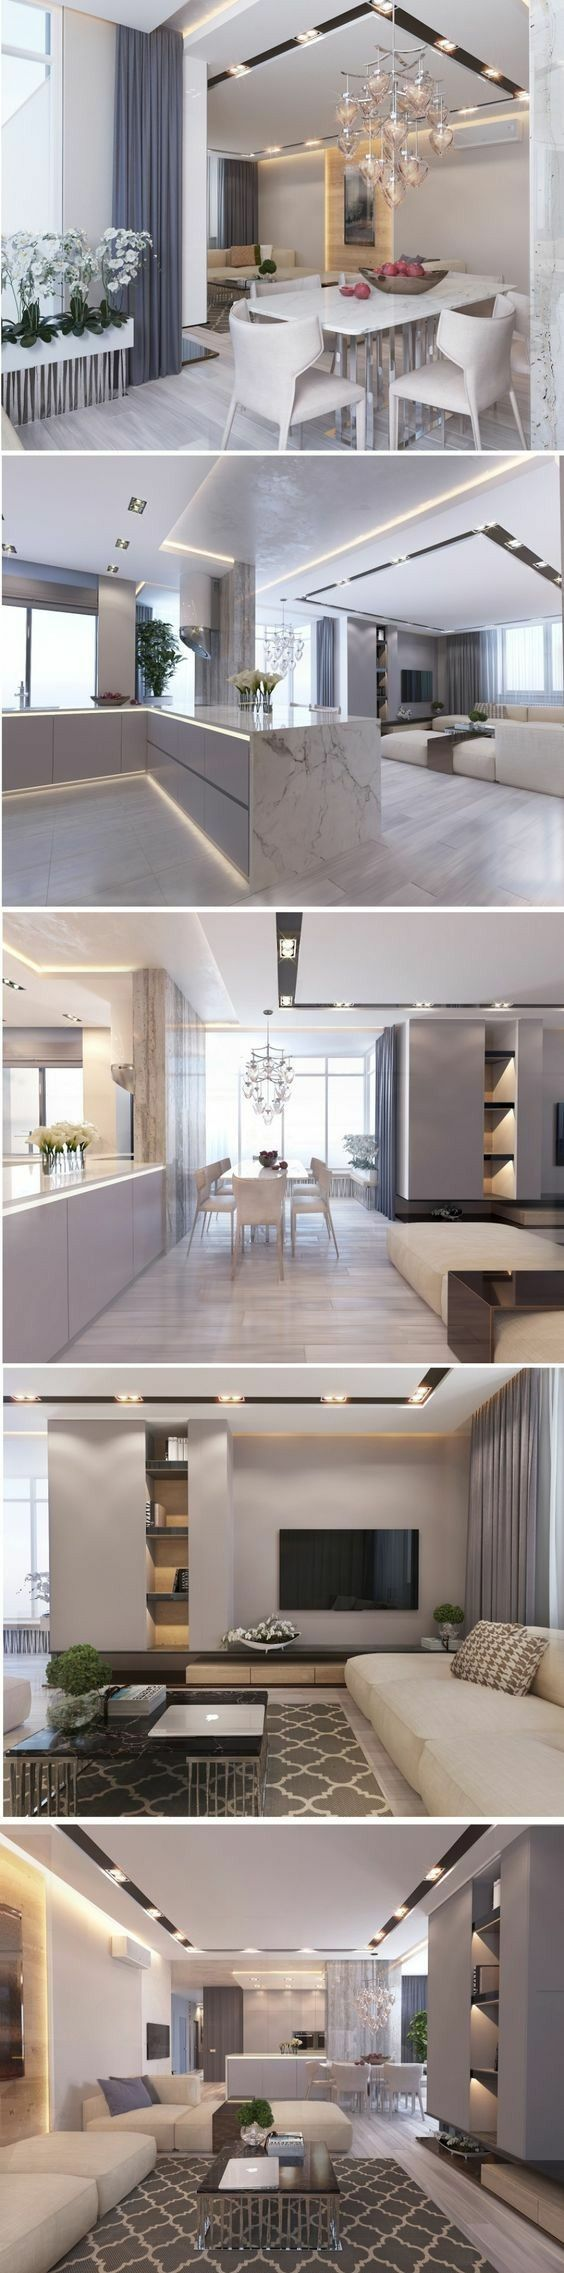 Kitchen living room family pomysły do domu pinterest kitchen